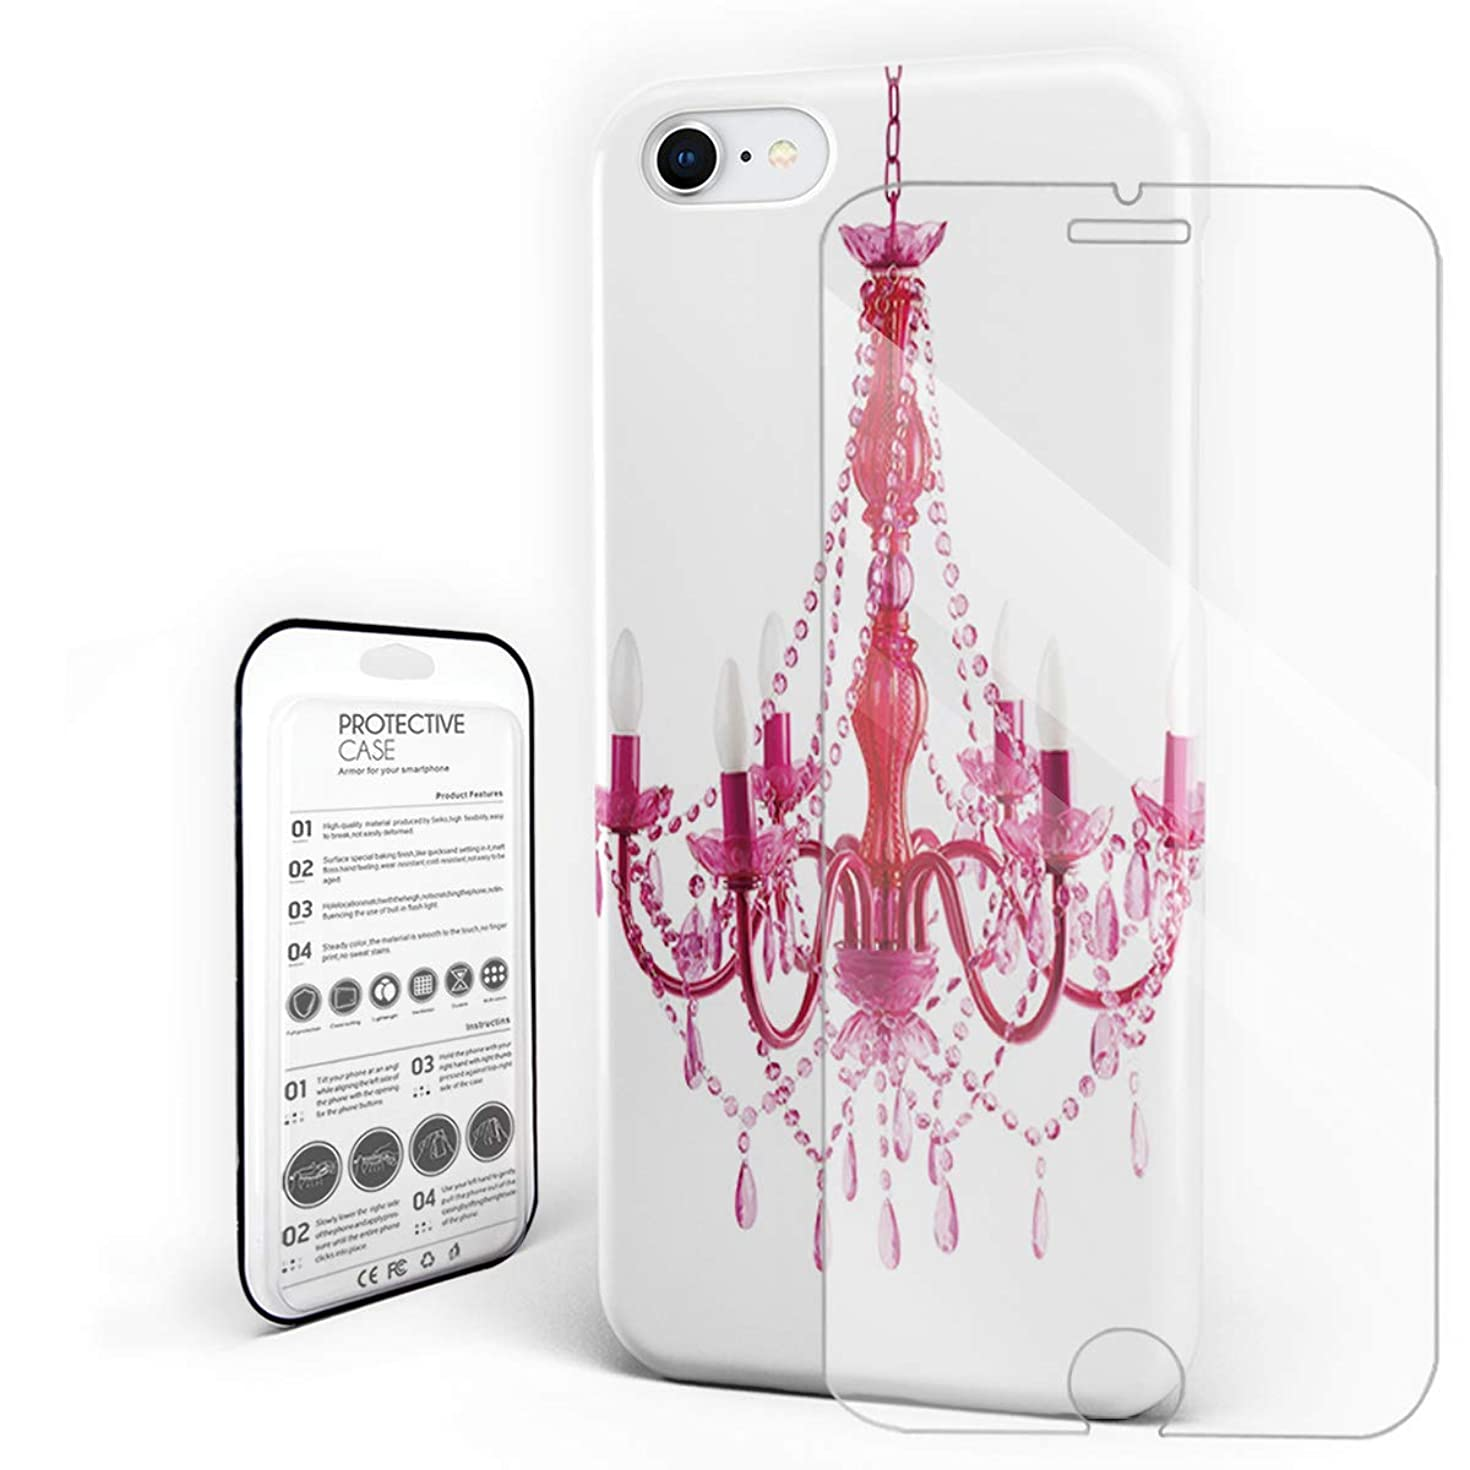 Russian Lamp Color Candle Chandelier Phone Case Slim Hard PC Back Cover with Glass Screen Protector Set for iPhone 7 Plus/8 Plus